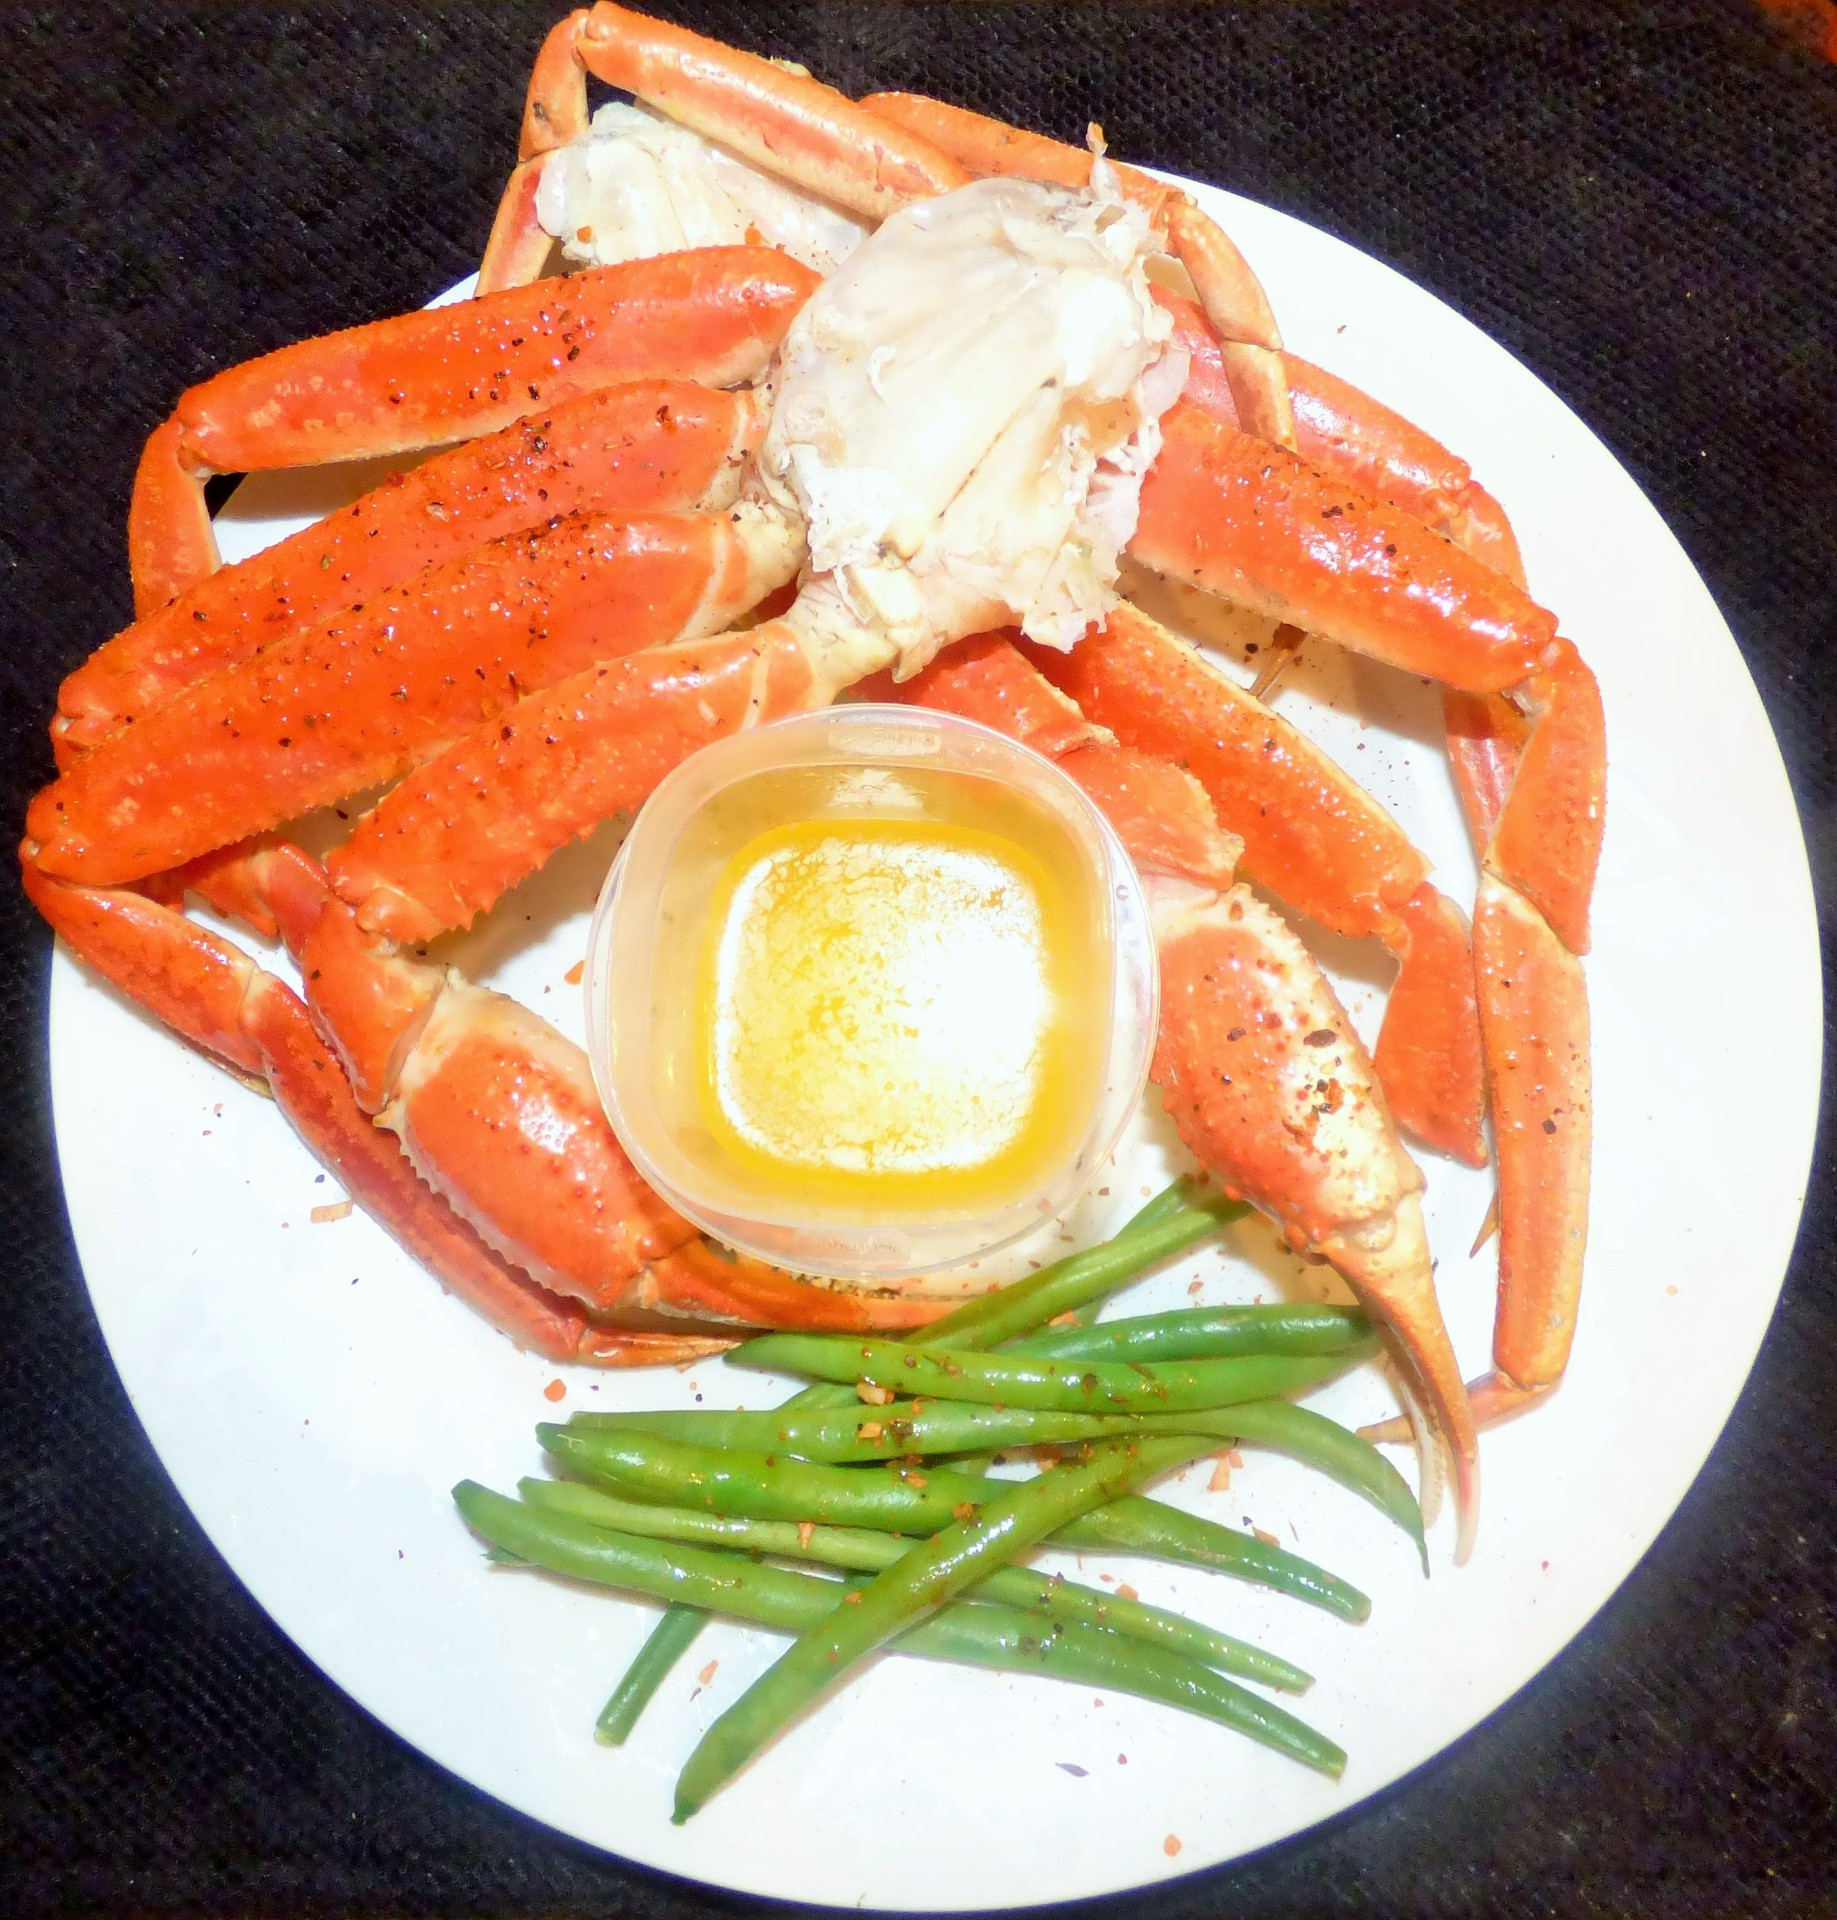 Steamed snow crab brushed with a sweet mesquite dry rub